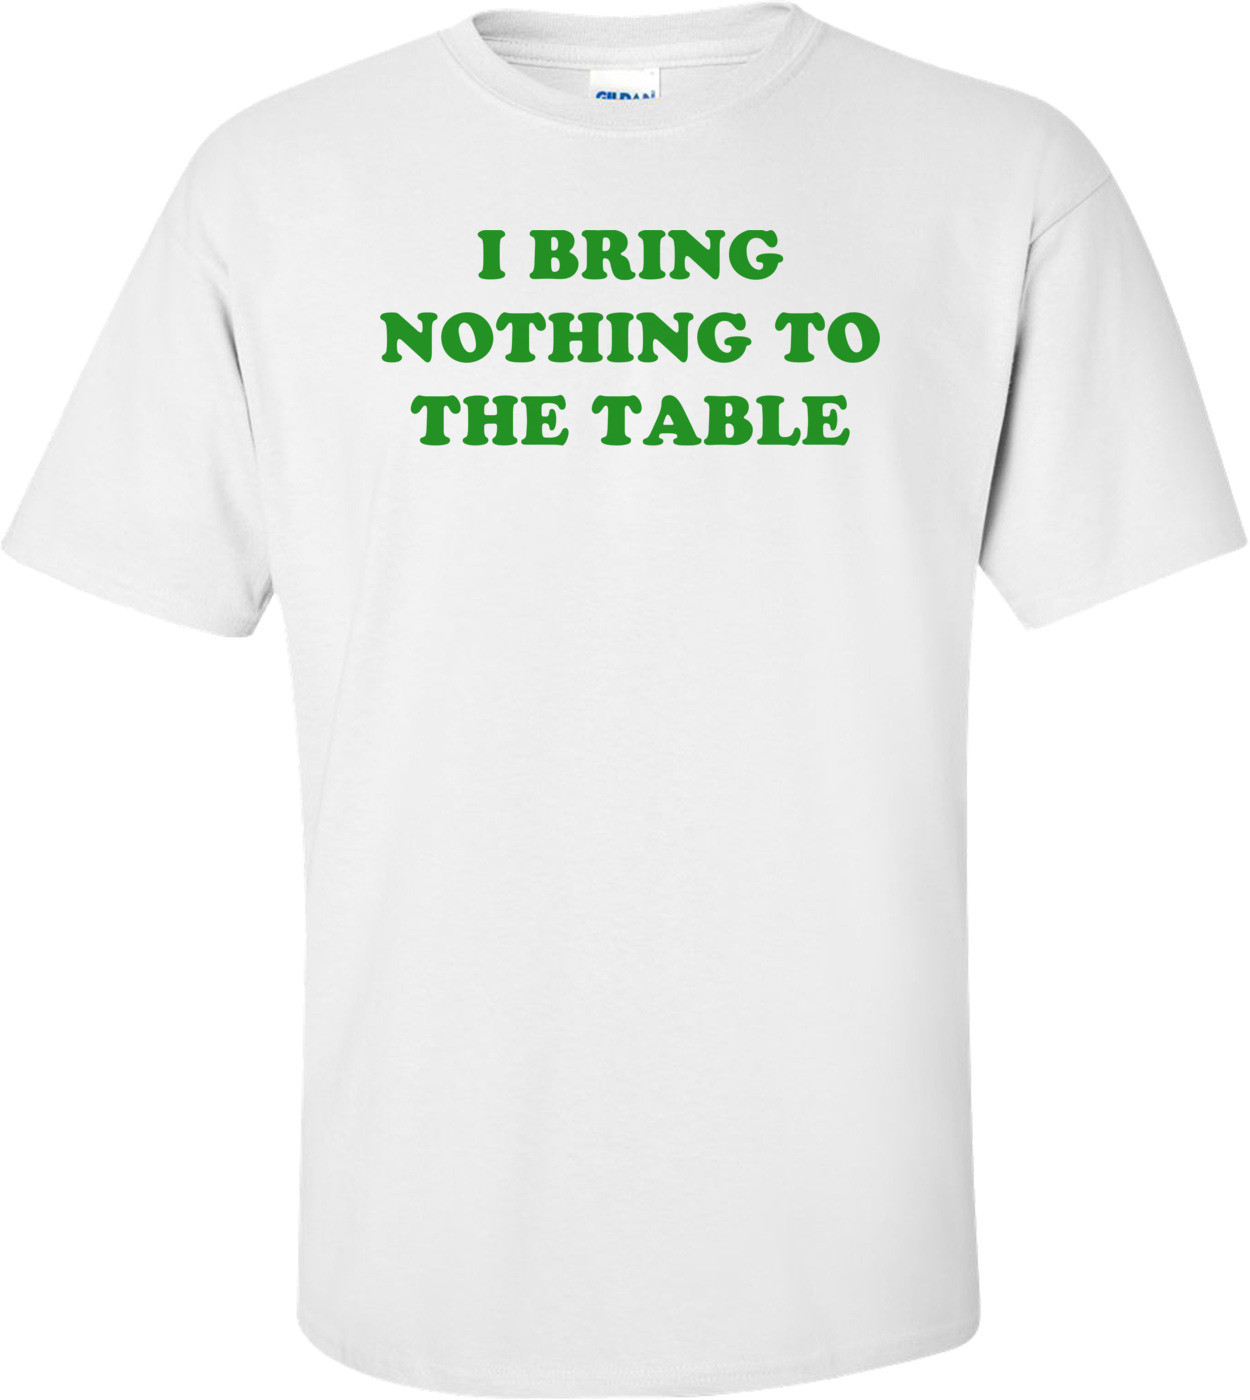 I BRING NOTHING TO THE TABLE Shirt